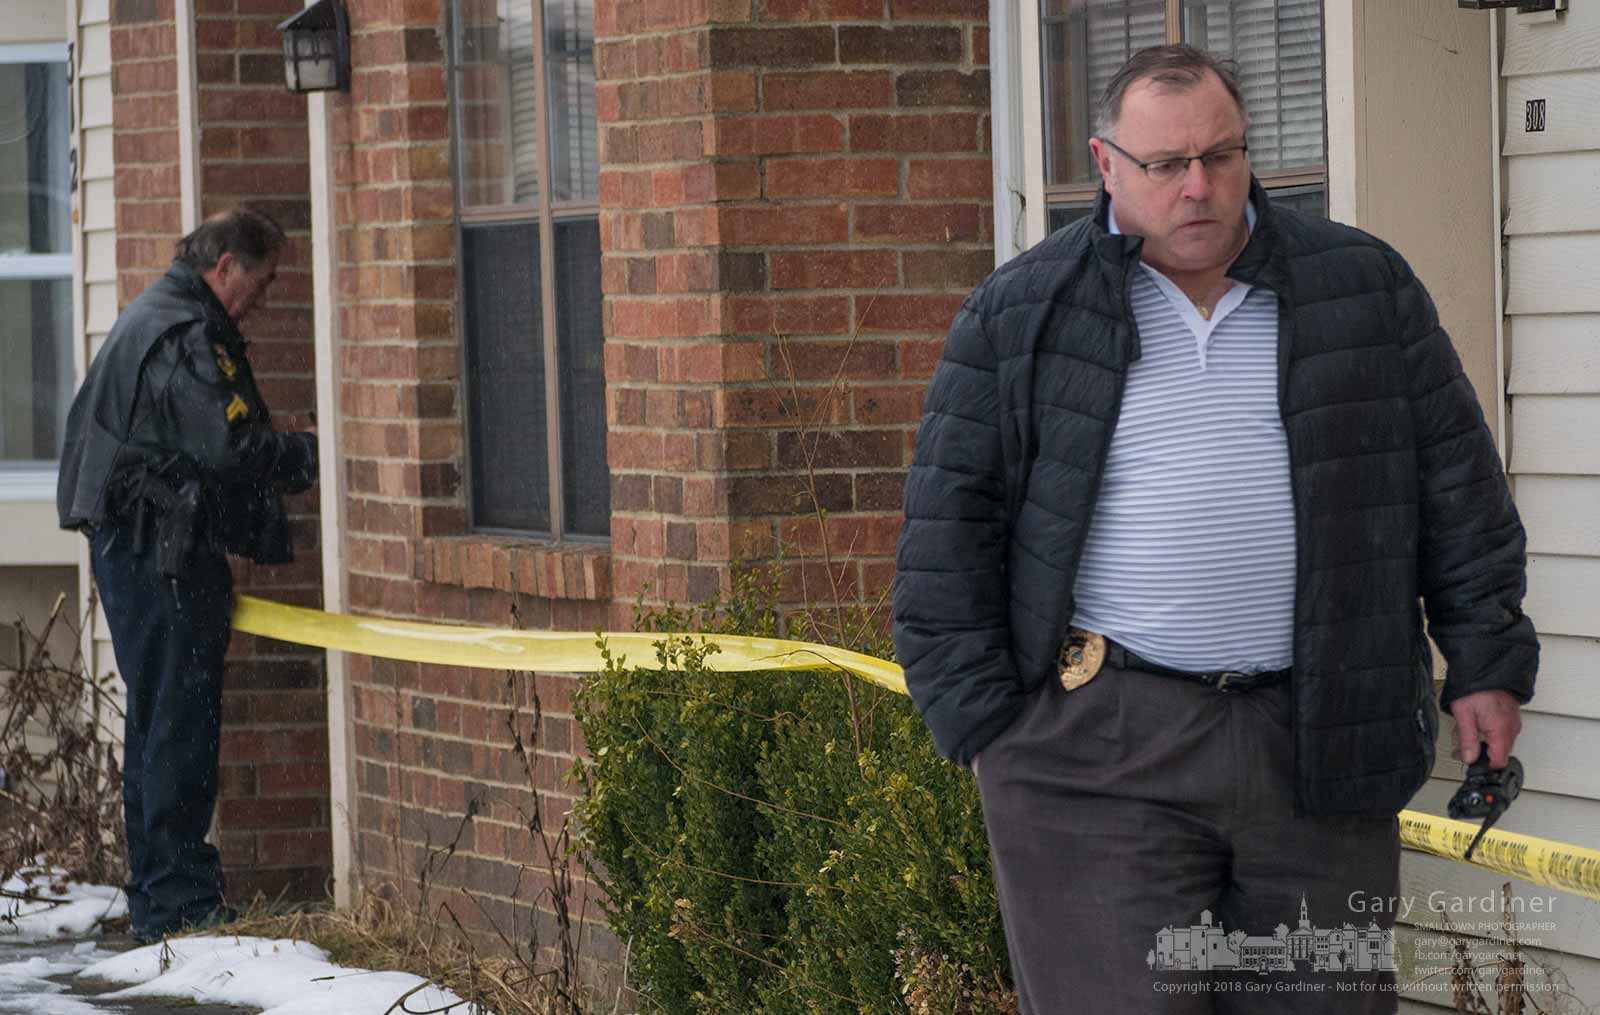 Westerville Police Chief Joe Morbitzer walks away from an apartment where two Westerville officers were killed investigating a dropped 911 call. My Final Photo for Feb. 10, 2018.